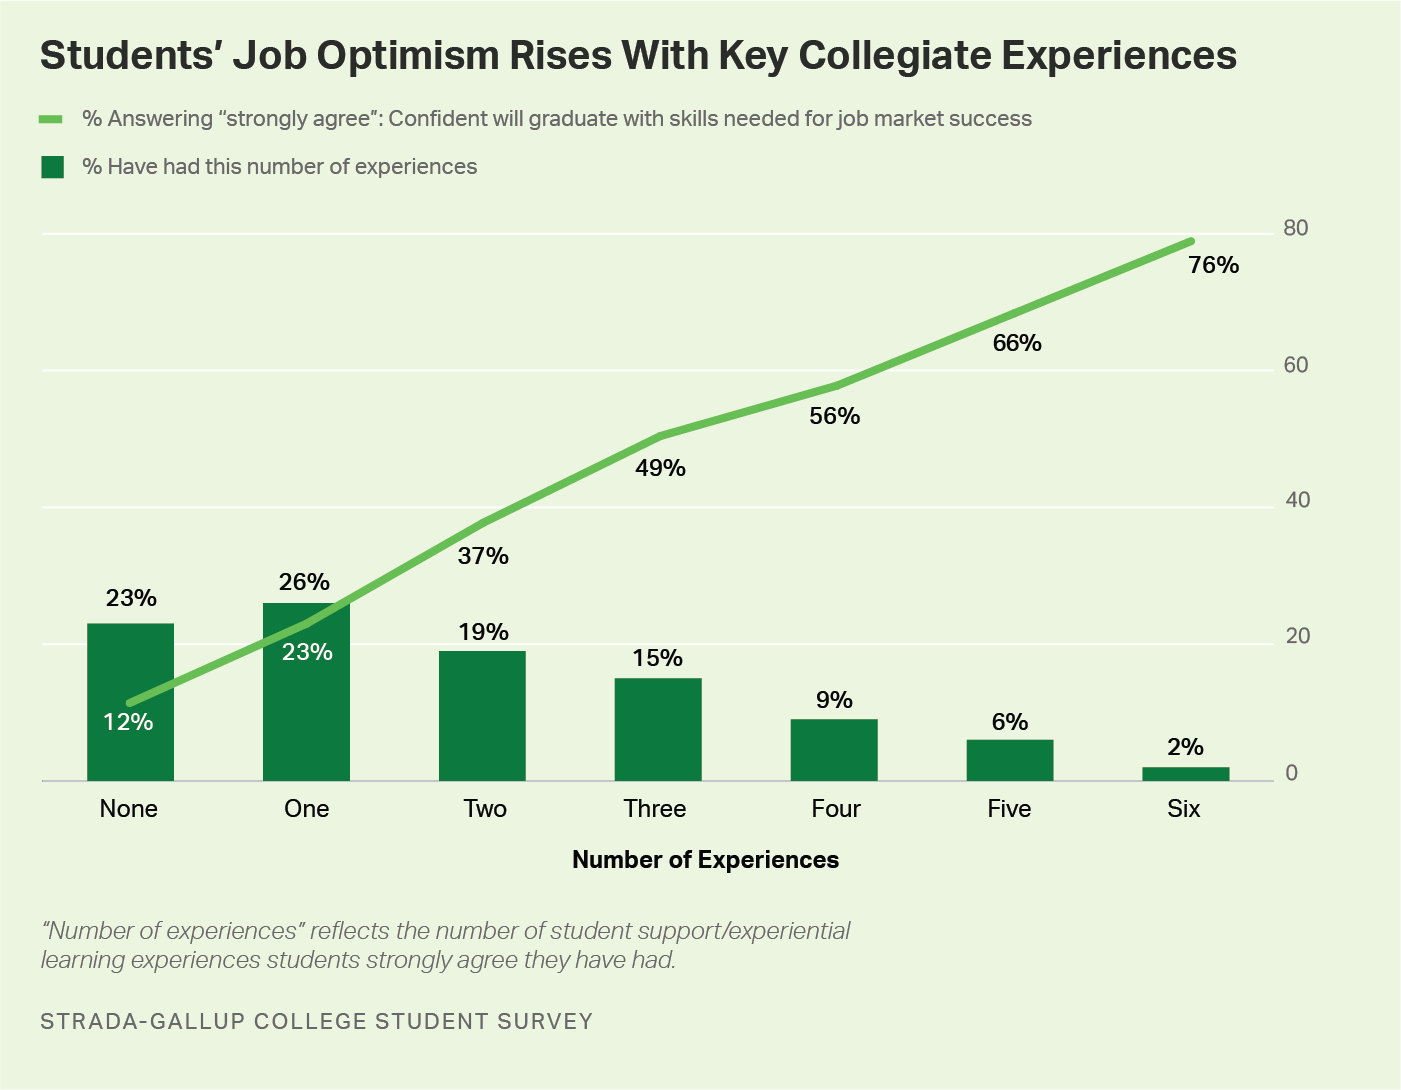 Line graph and bar graph. Students' job optimism rises with key collegiate experiences.